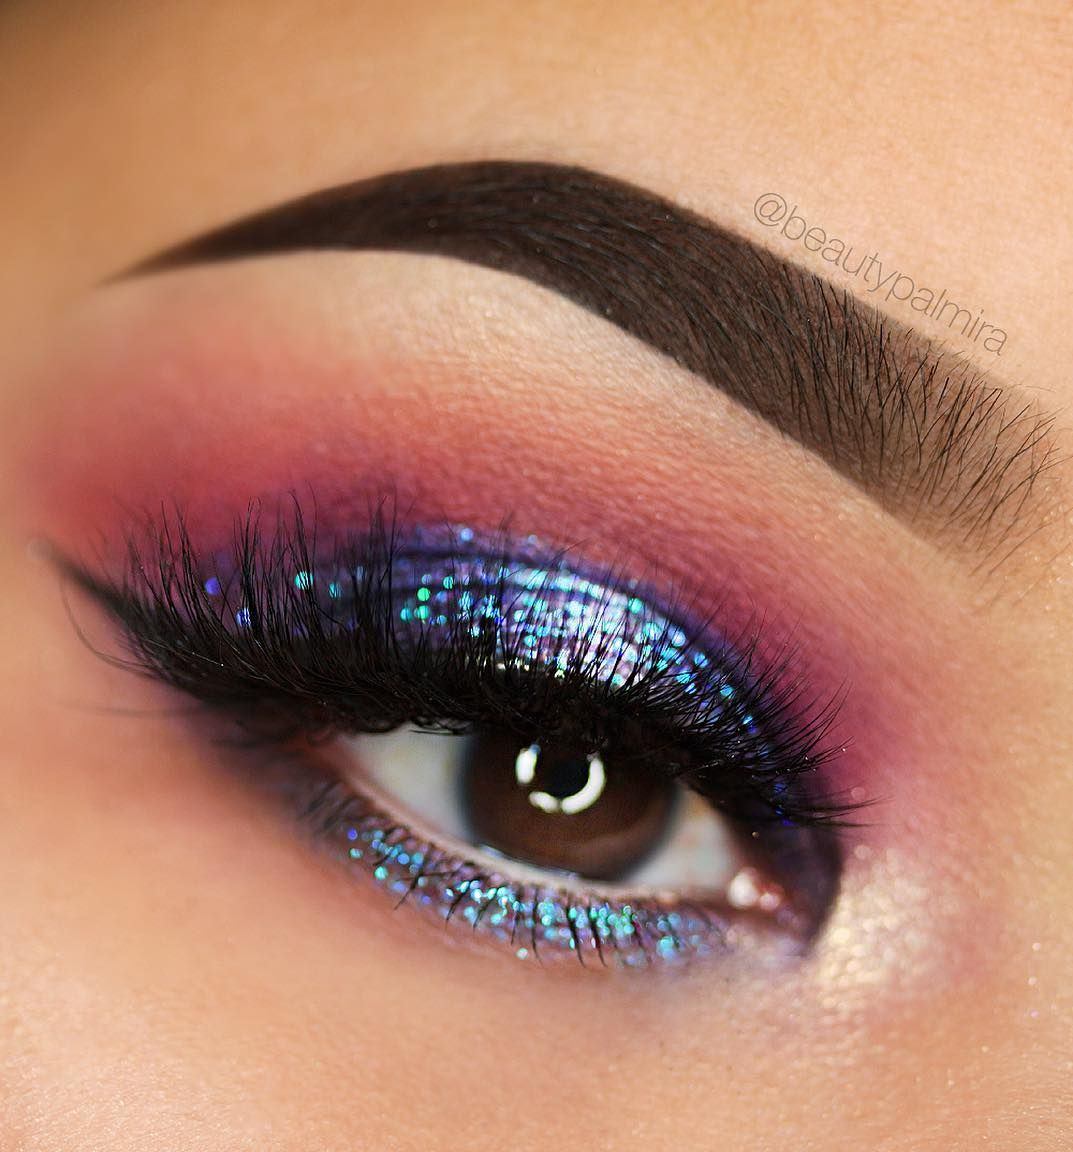 Amazing beautiful eye makeup ideas